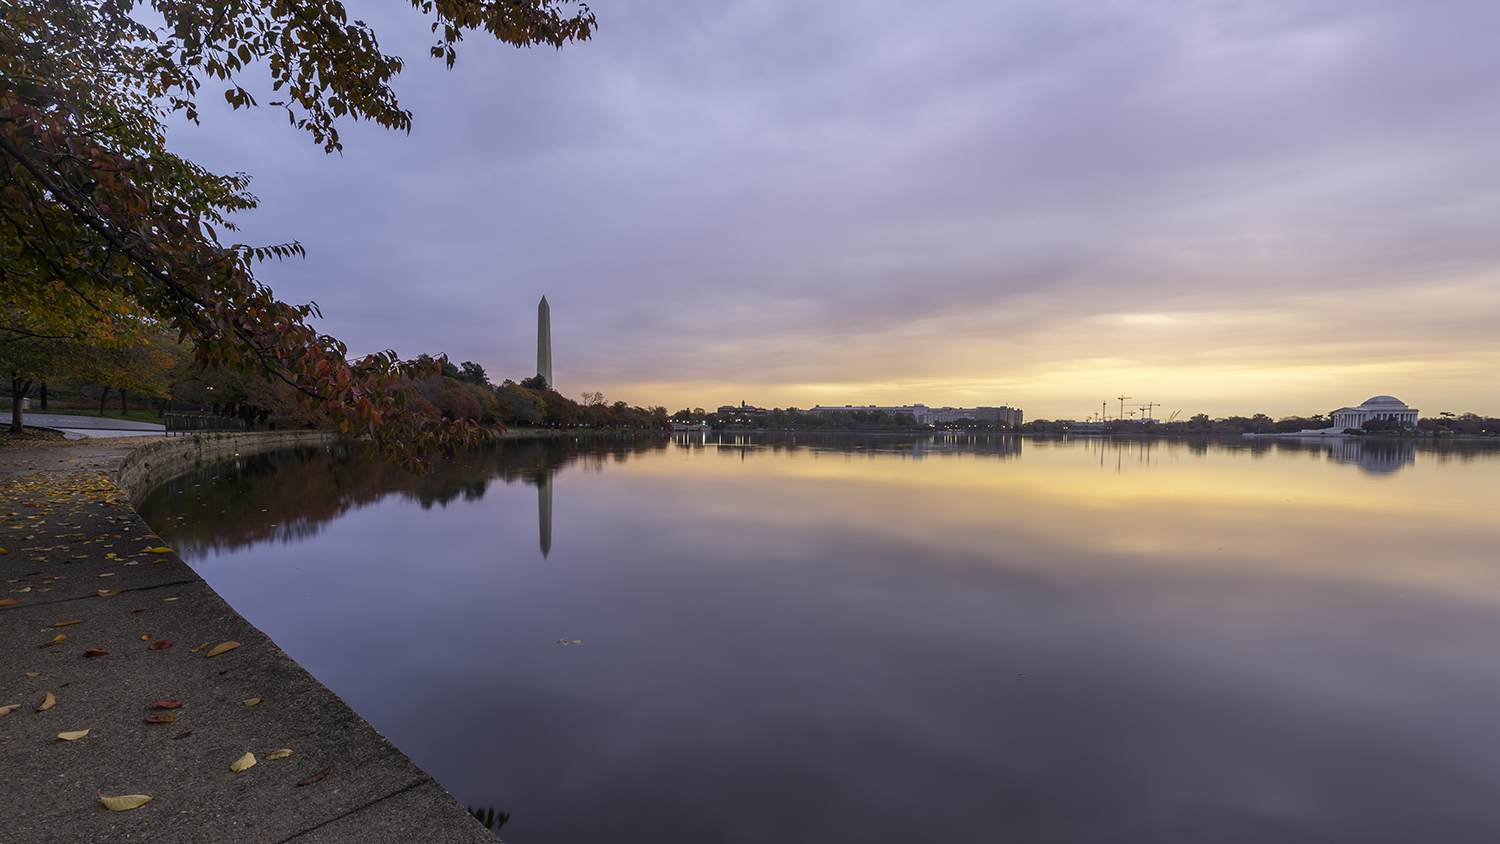 Tidal Basin in Fall colors. Cherry trees with Washington Monument and Jefferson Memorial, Washington D.C.